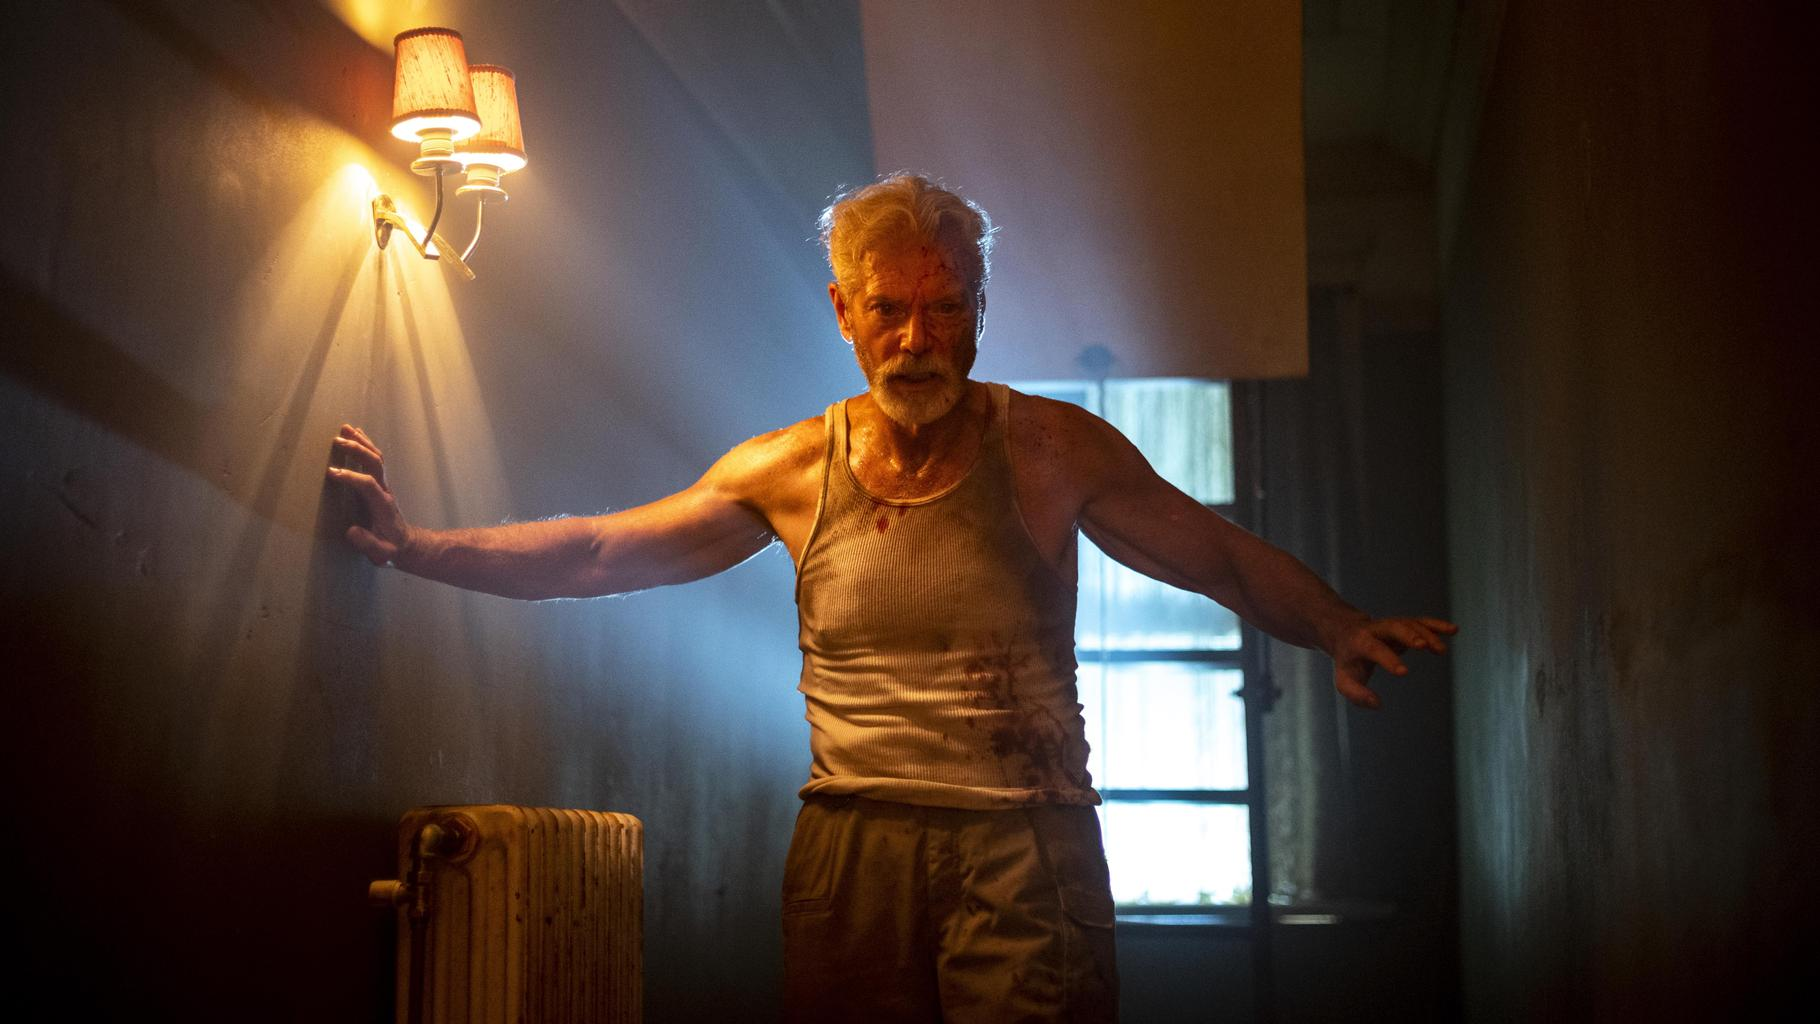 Norman Nordstrom (aka The Blind Man) in 'Don't Breathe 2'